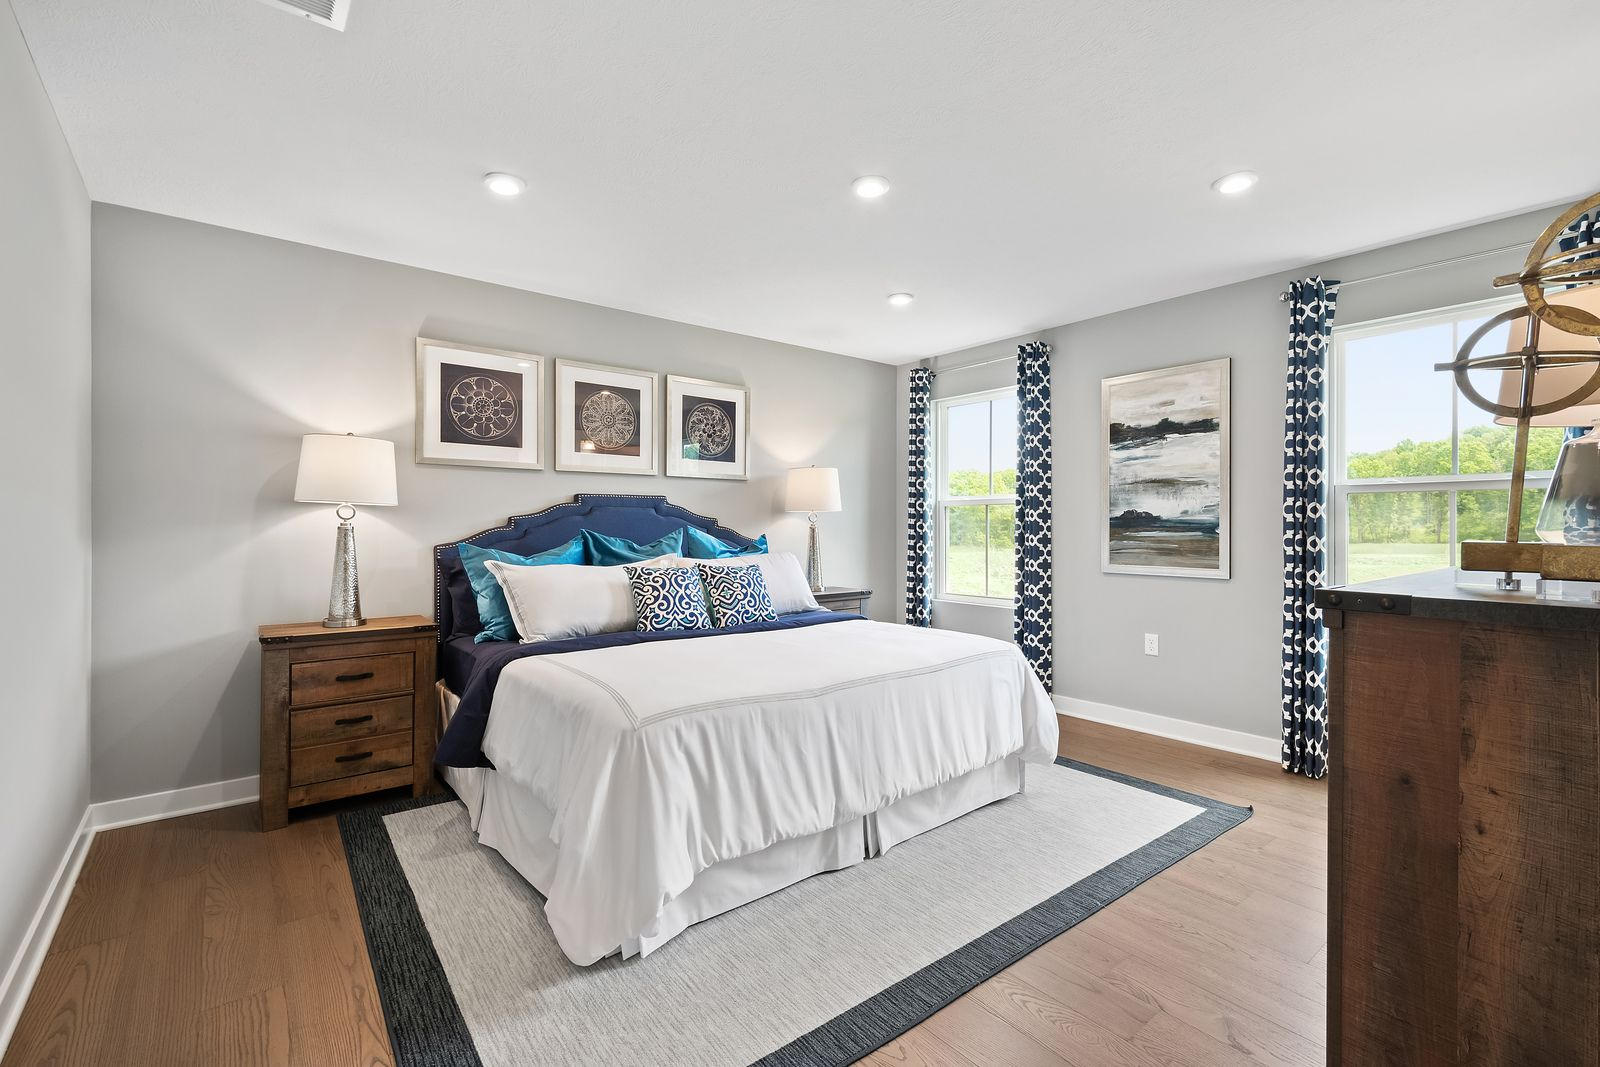 Bedroom featured in the Caicos By Ryan Homes in Columbus, OH